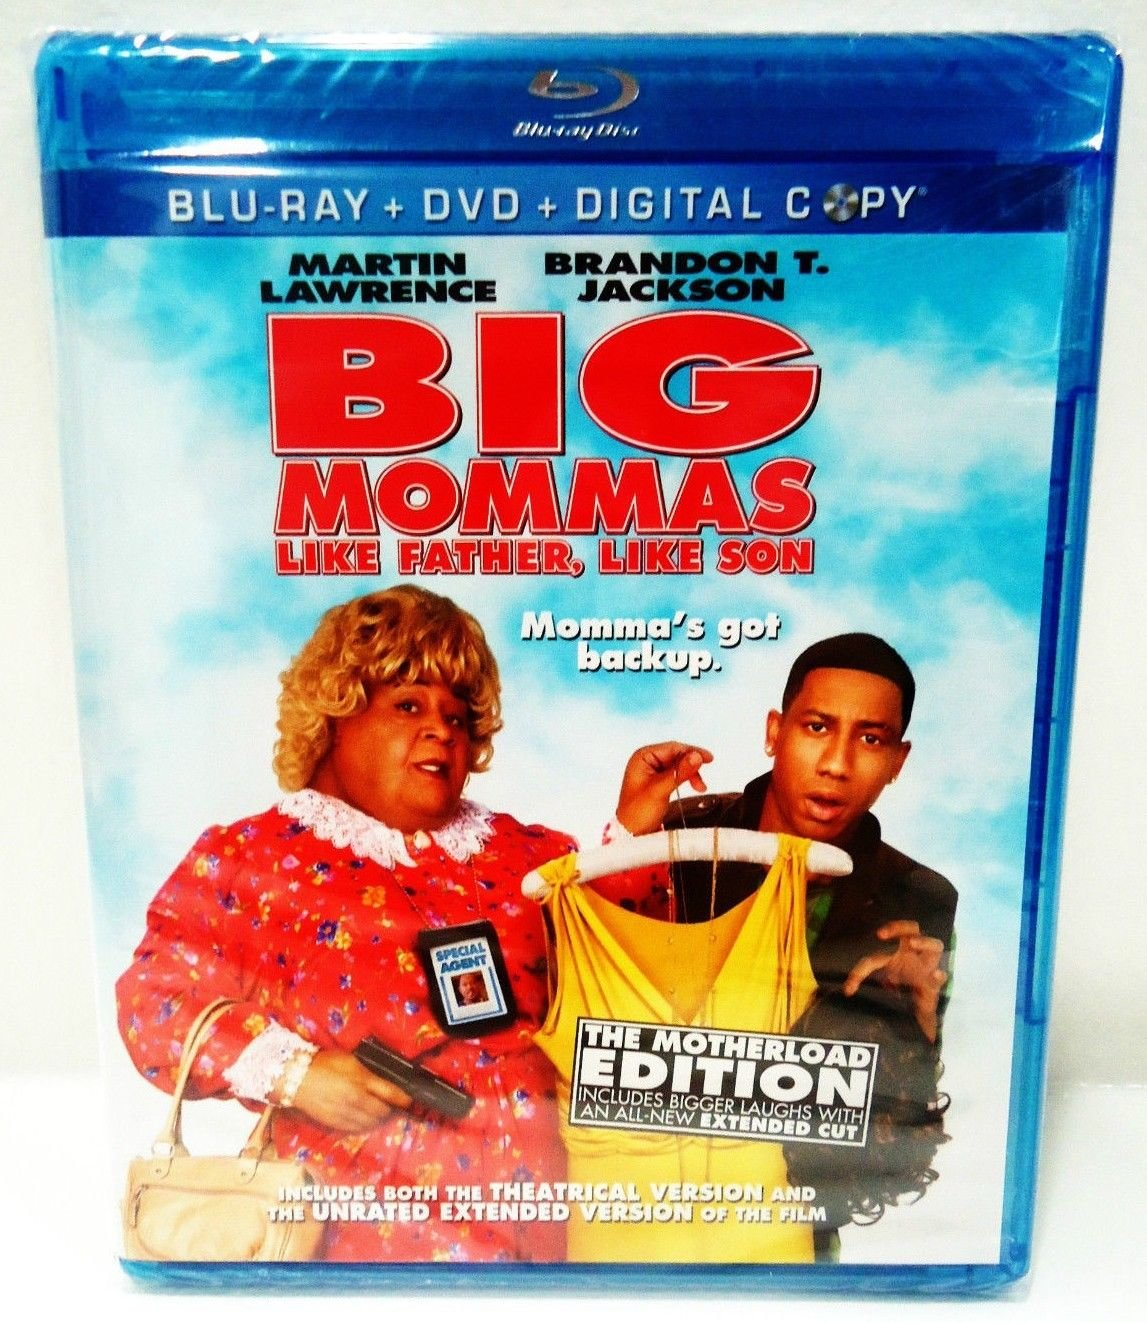 BIG MOMMAS - DVD - BLU-RAY - MARTIN LAWRENCE - NEW - 3 DISC SET - COMEDY - MOVIE